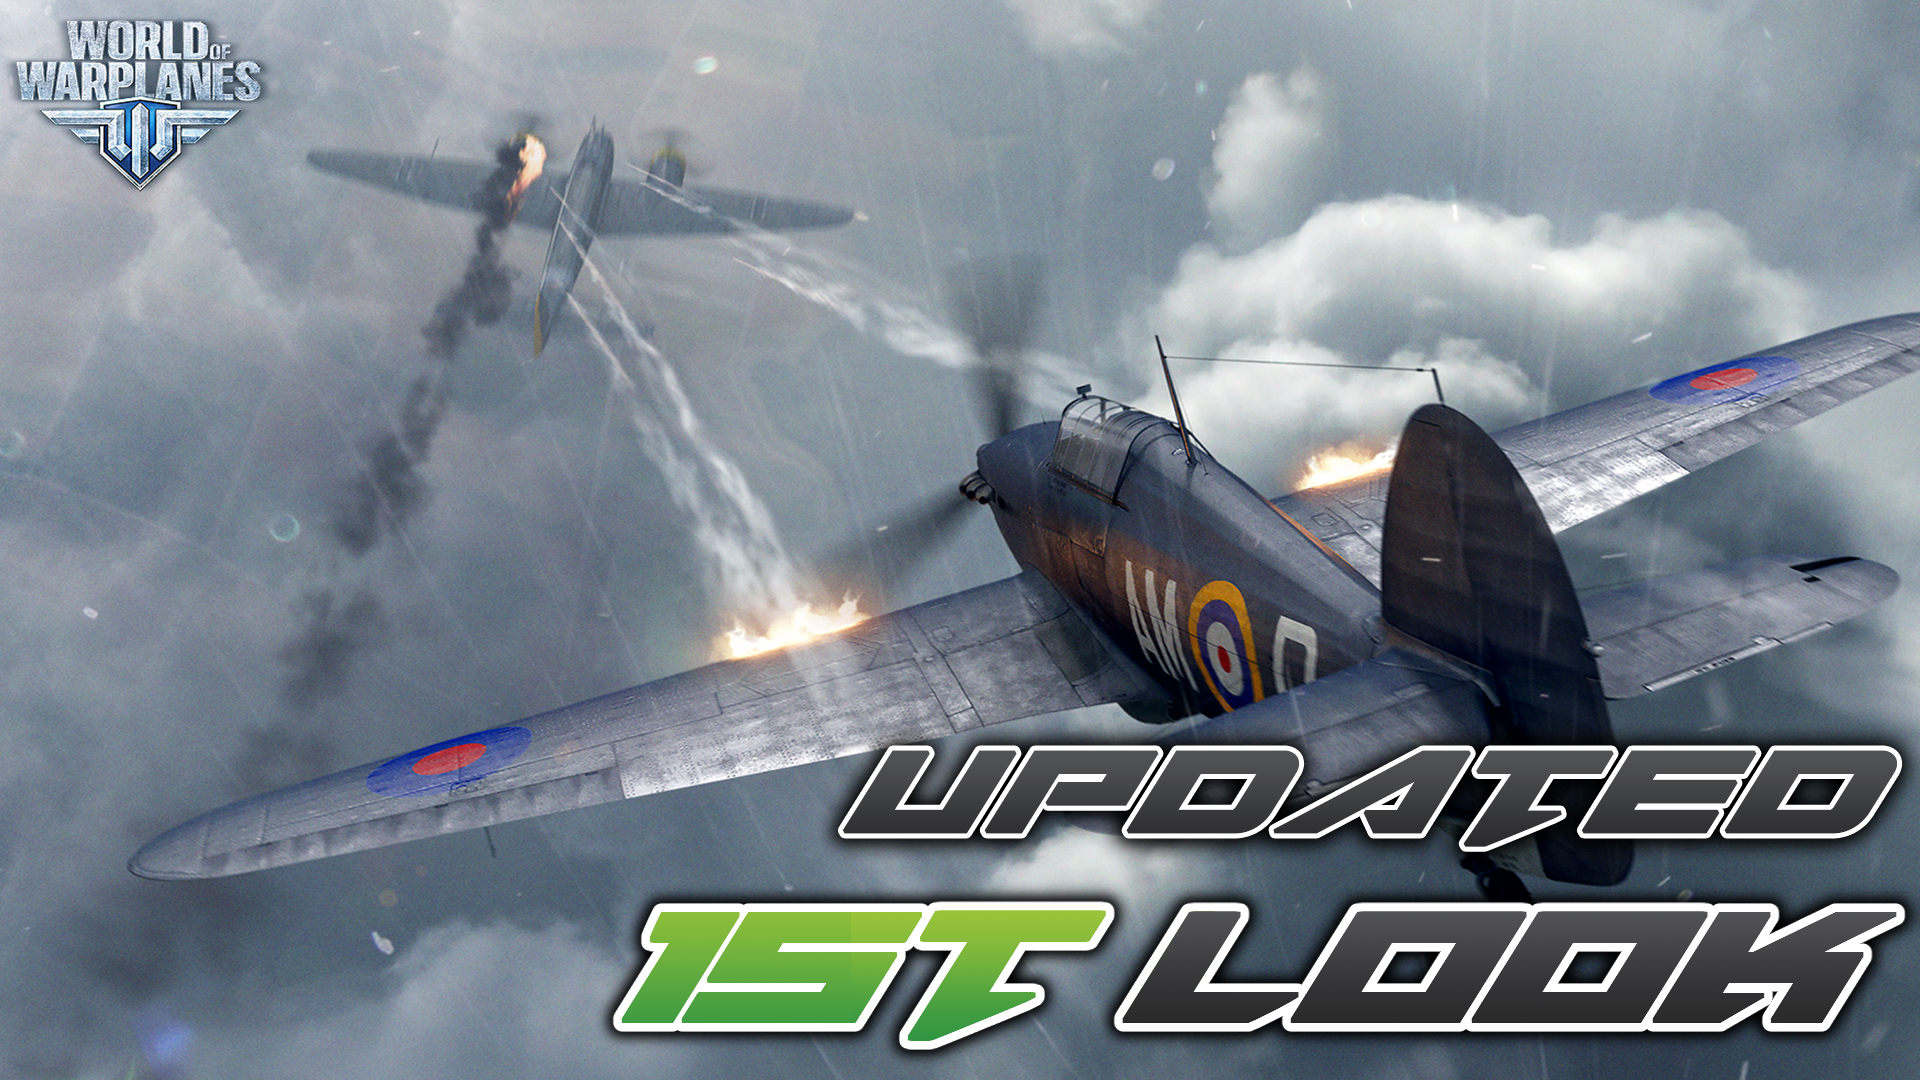 Colt takes an updated first look at World of Warplanes.